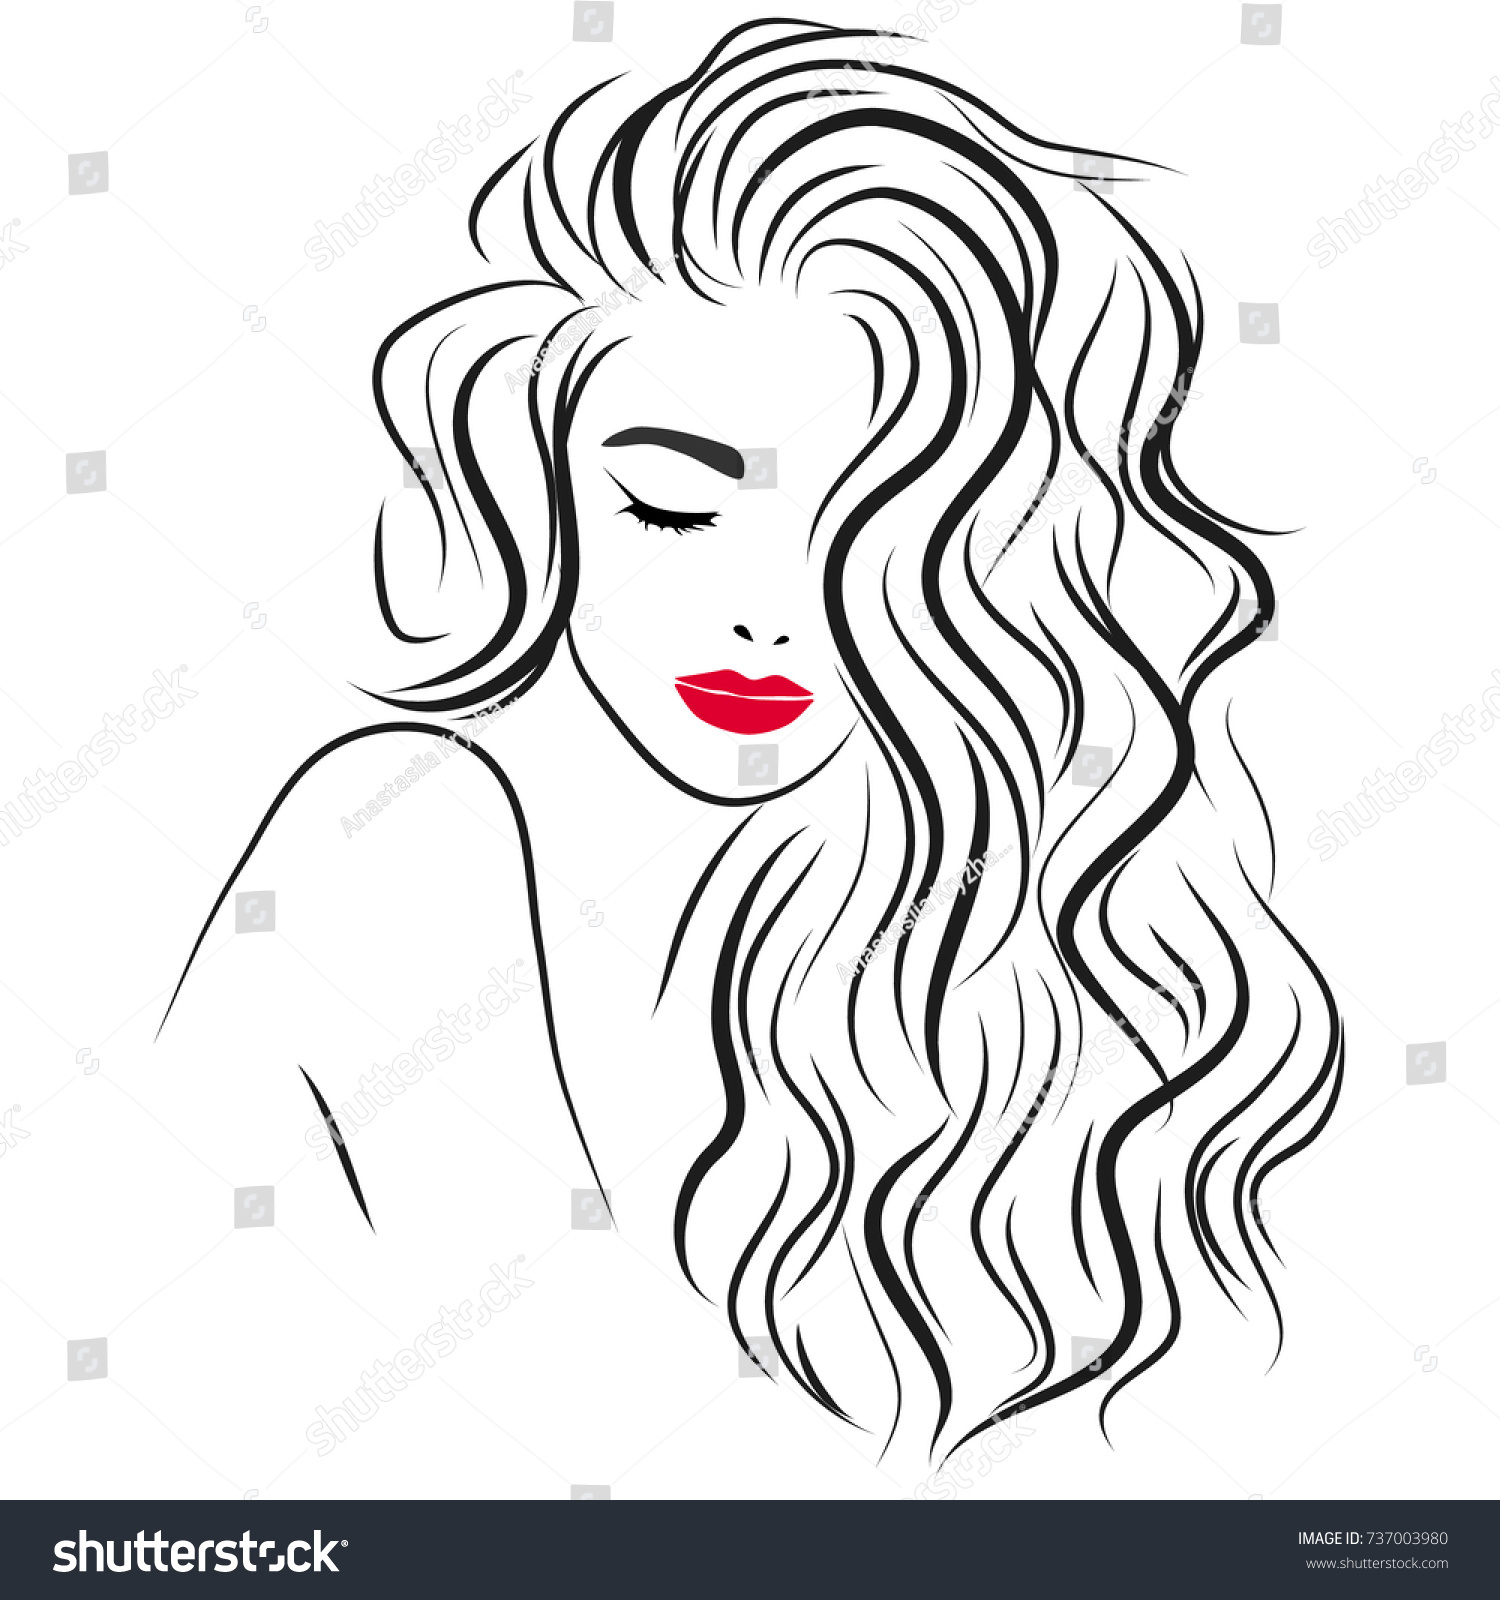 Young Beautiful Girl With Curly Hair Illustration For Beauty Salon